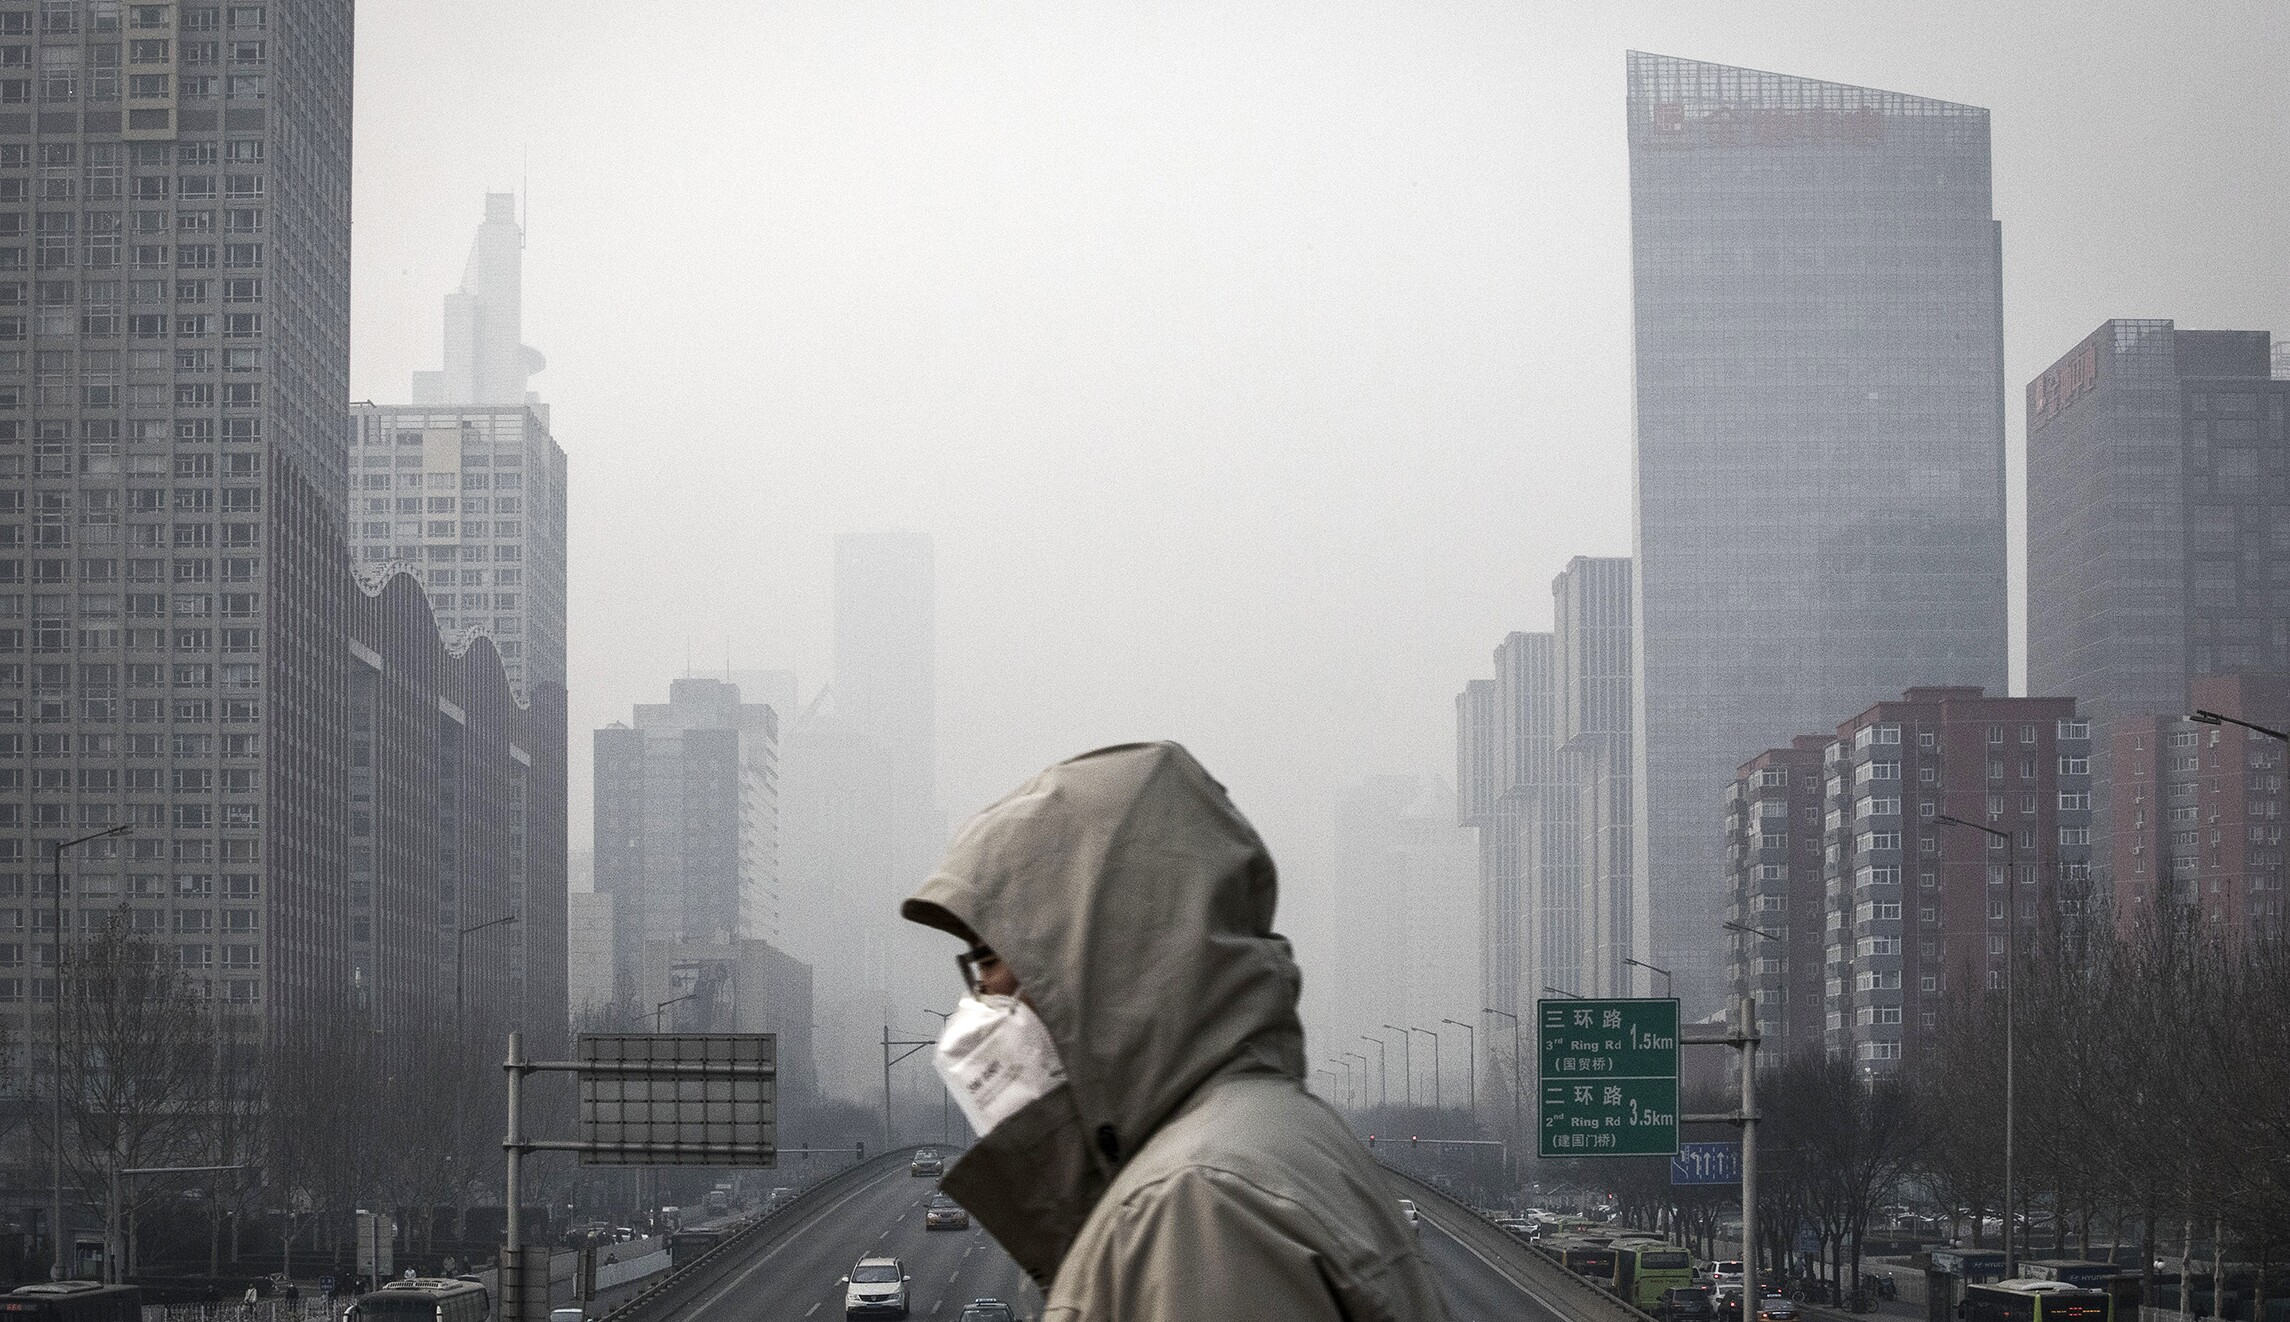 Exposure To Air Pollution During >> Normal Exposure To Air Pollution Shaves The Equivalent Of One Year